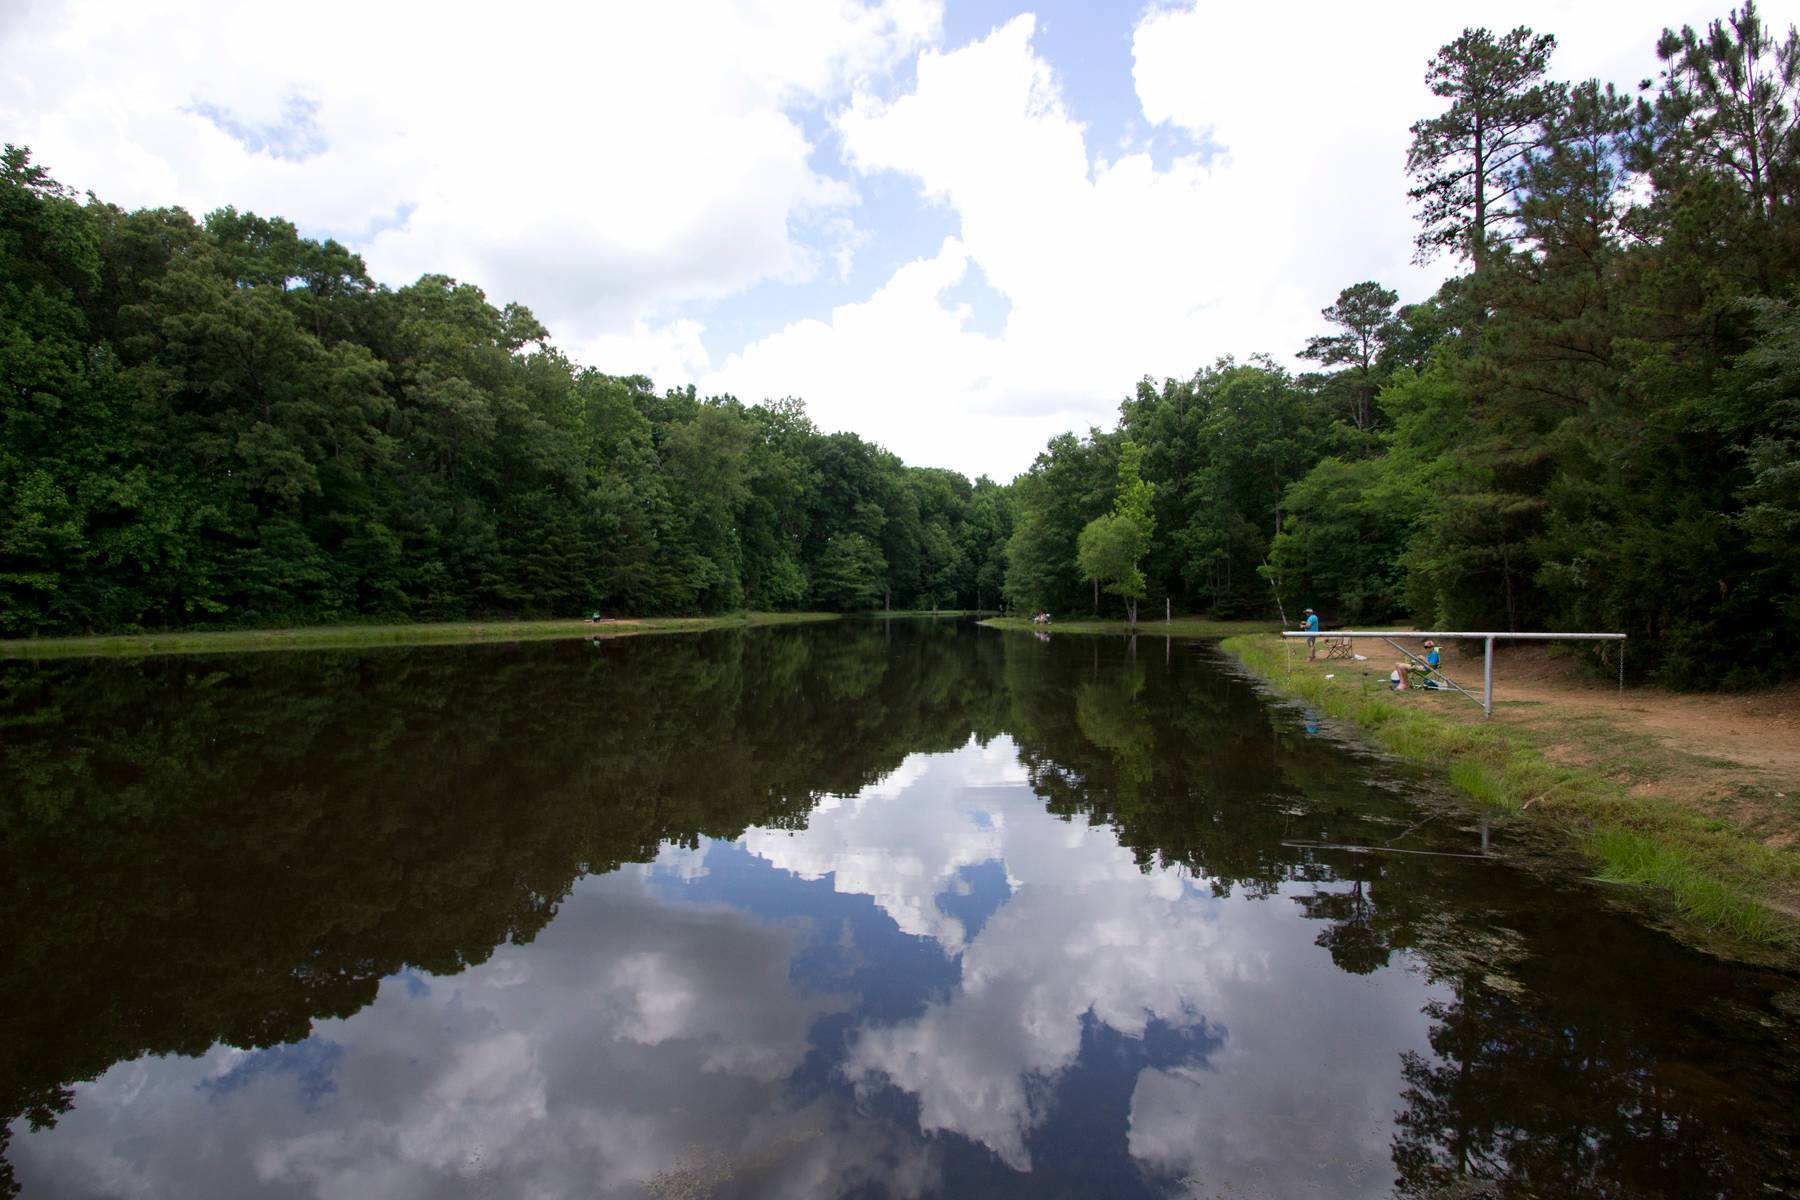 Fishing pond at Draper Mgmt. Area in McConnells, SC in York County.